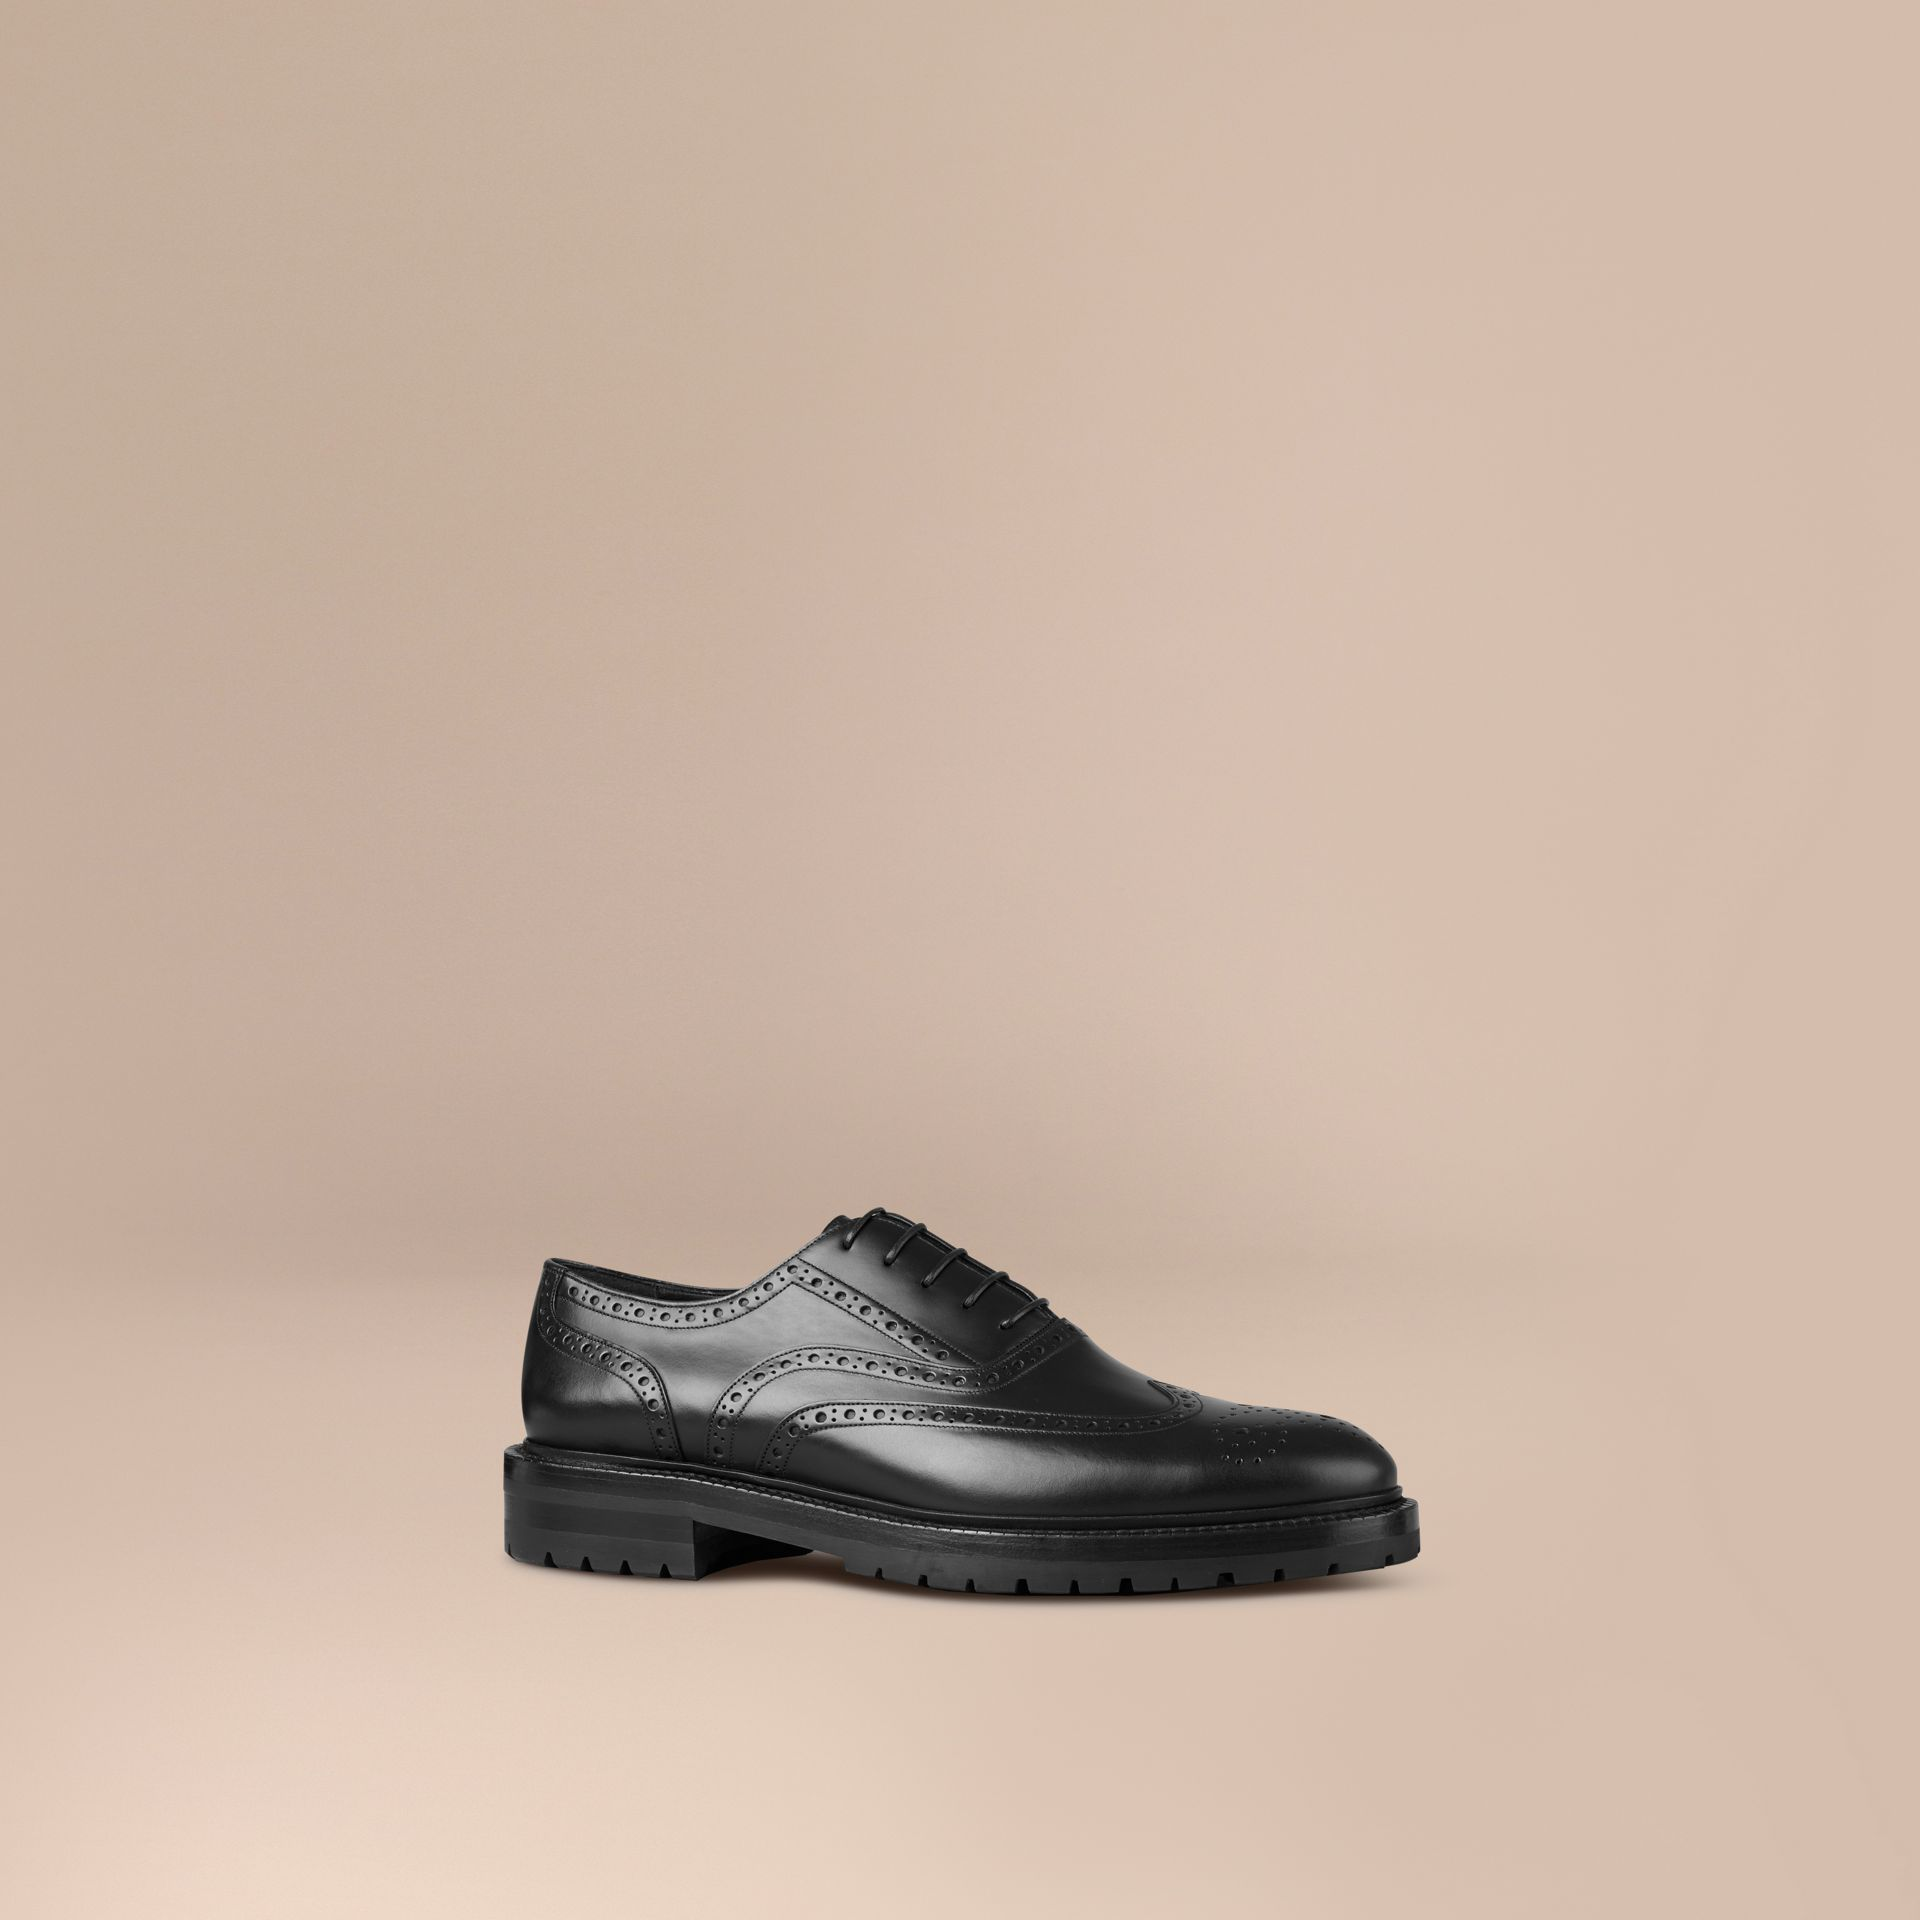 Black Leather Wingtip Brogues With Rubber Sole Black - gallery image 1